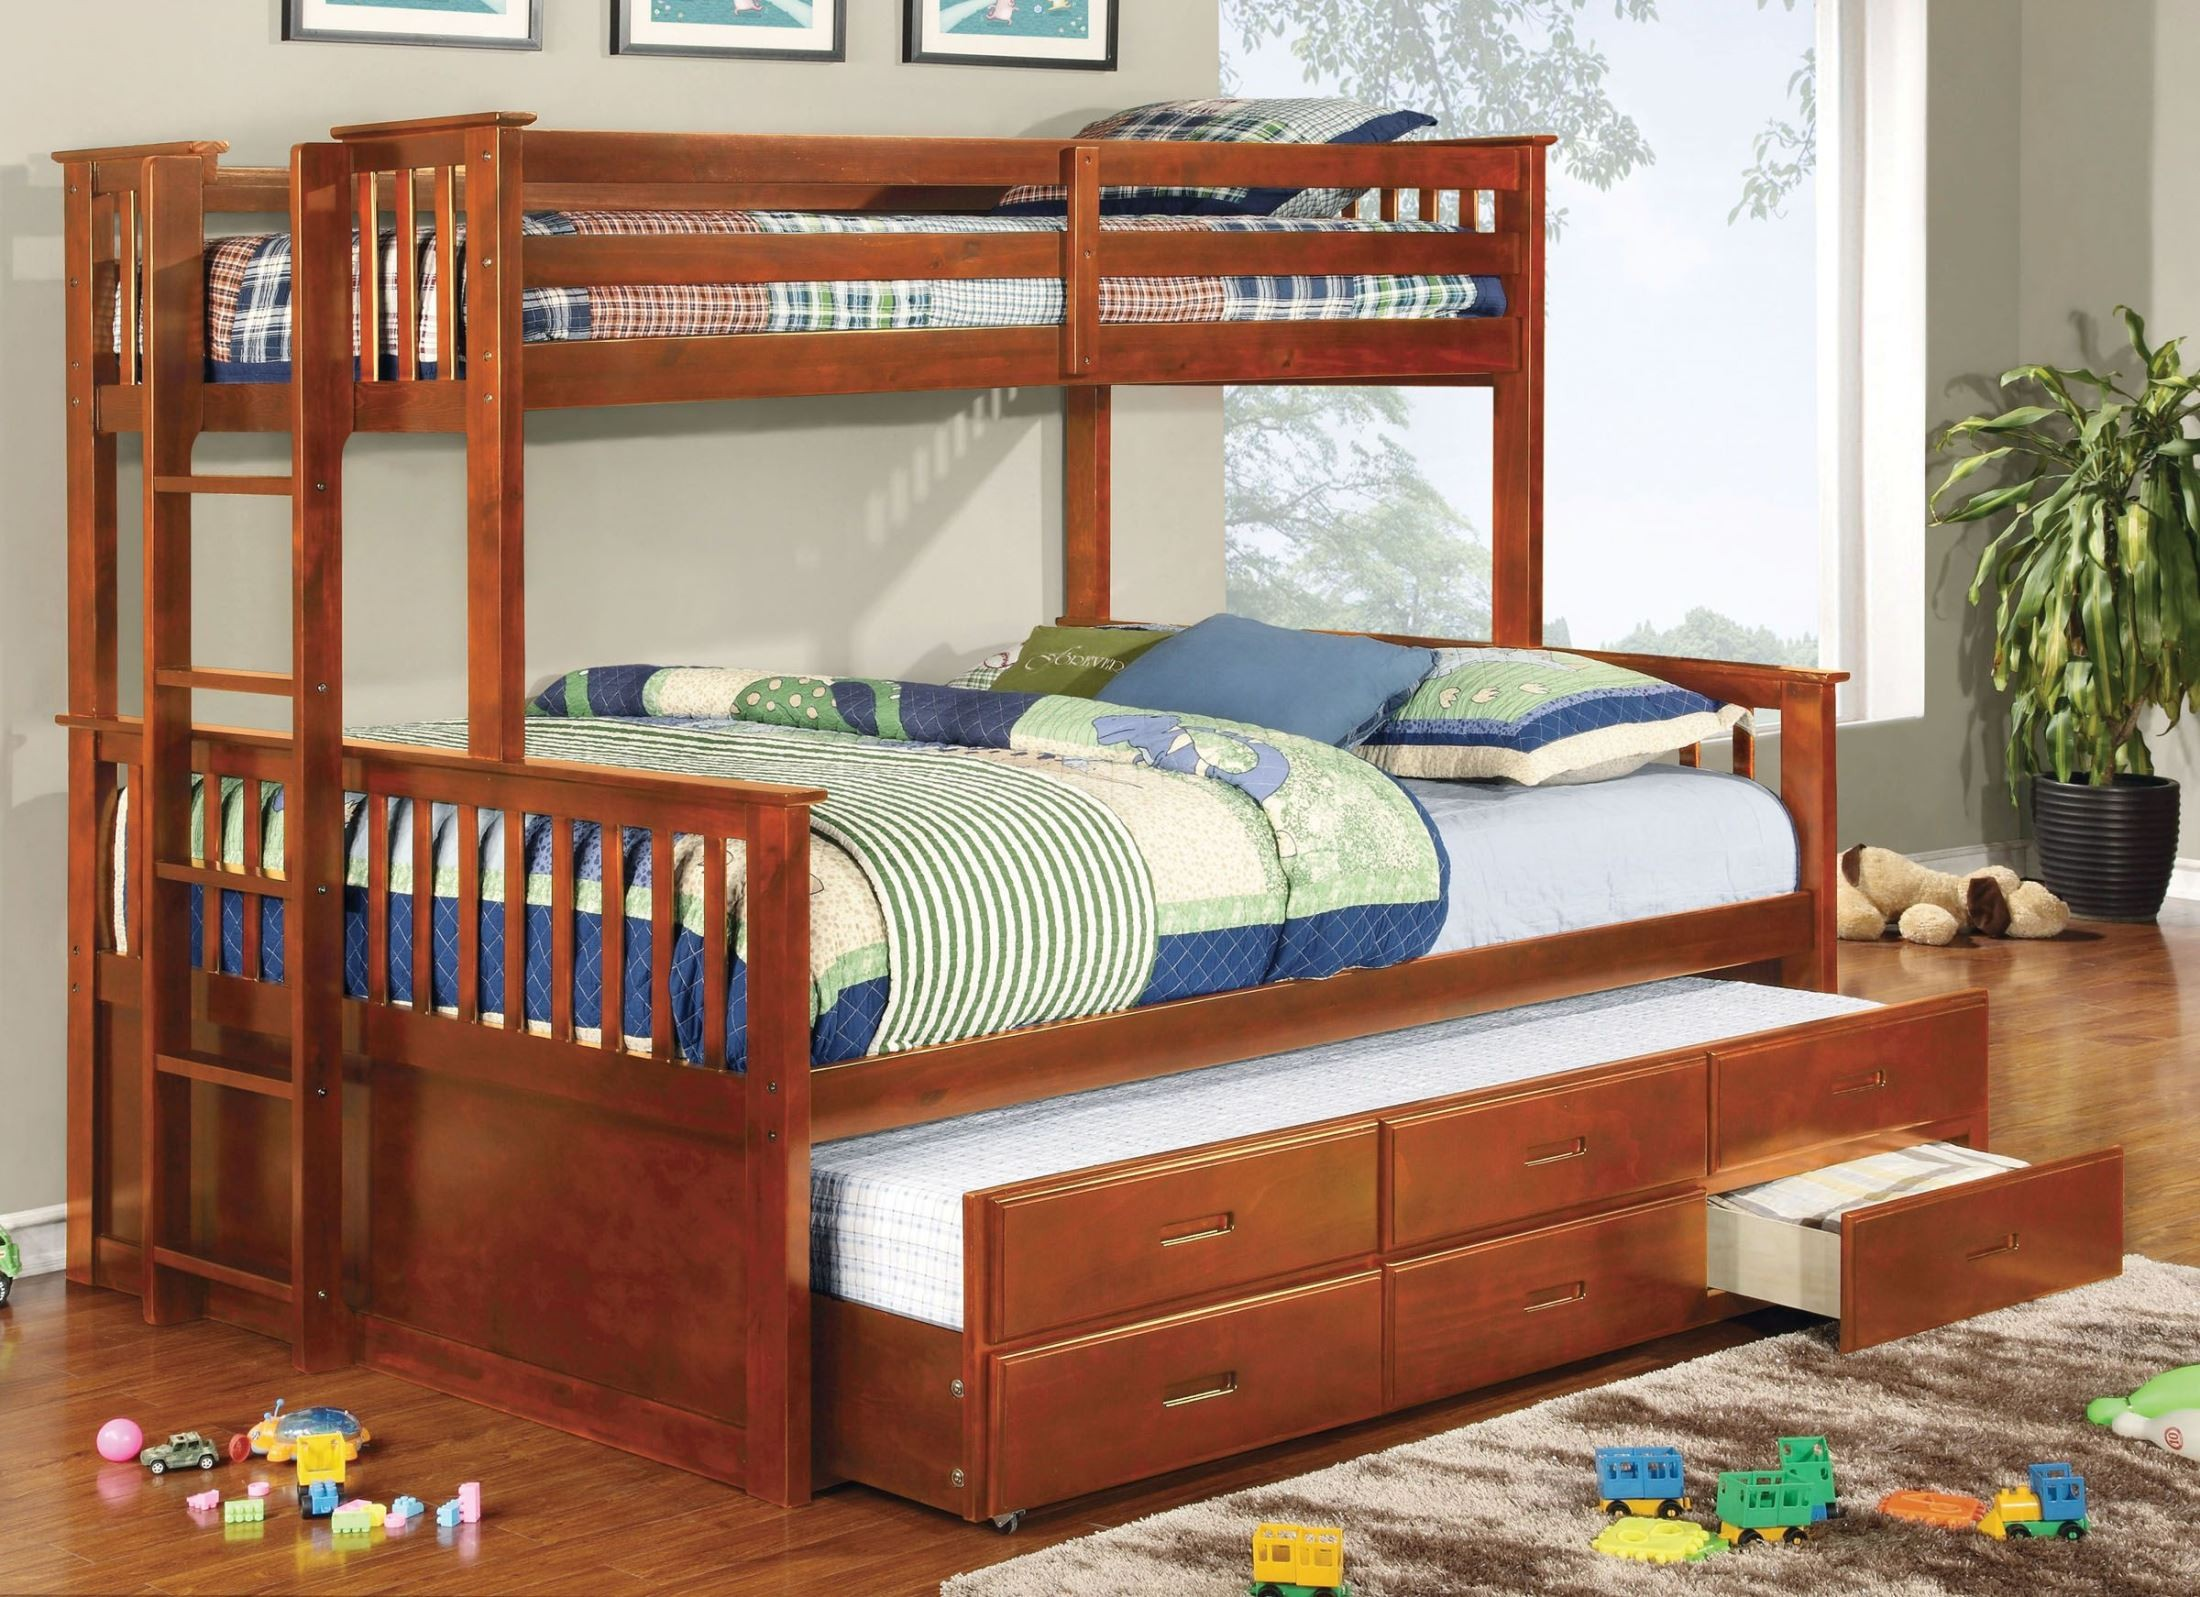 University Oak Extra Long Twin Over Queen Bunk Bed From